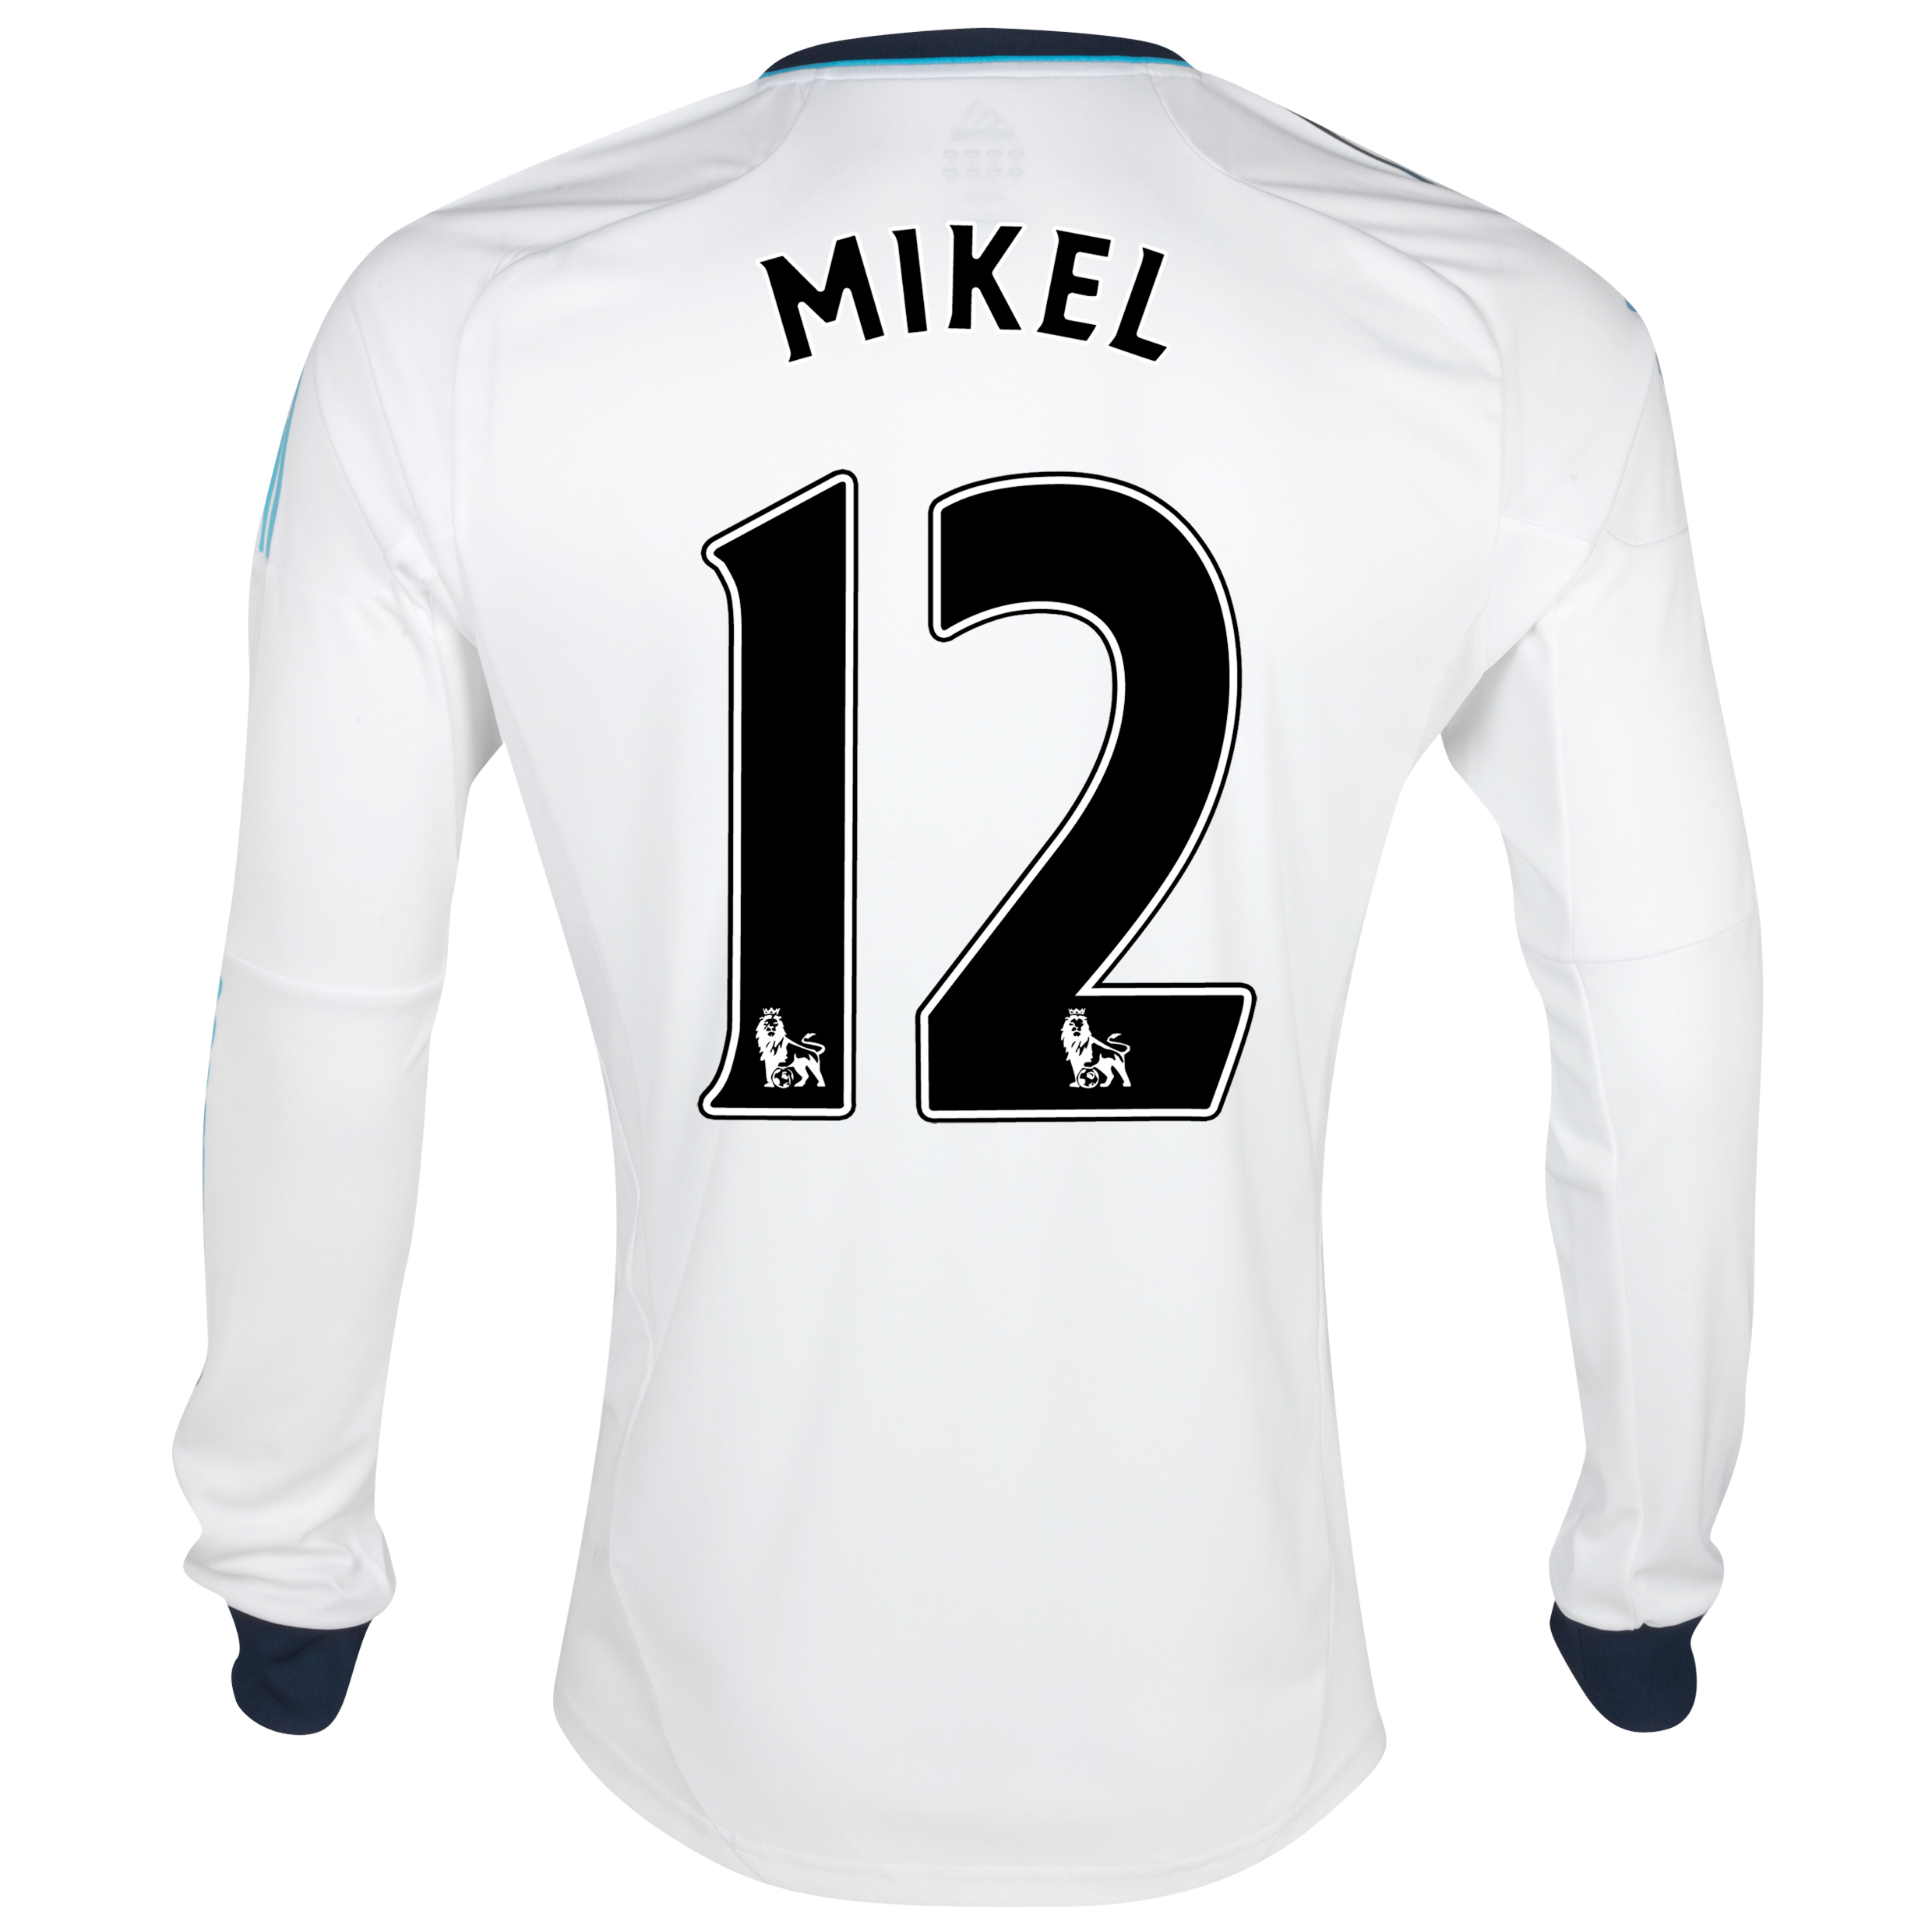 Chelsea Away Shirt 2012/13 - Long Sleeved  - Youths with Mikel 12 printing